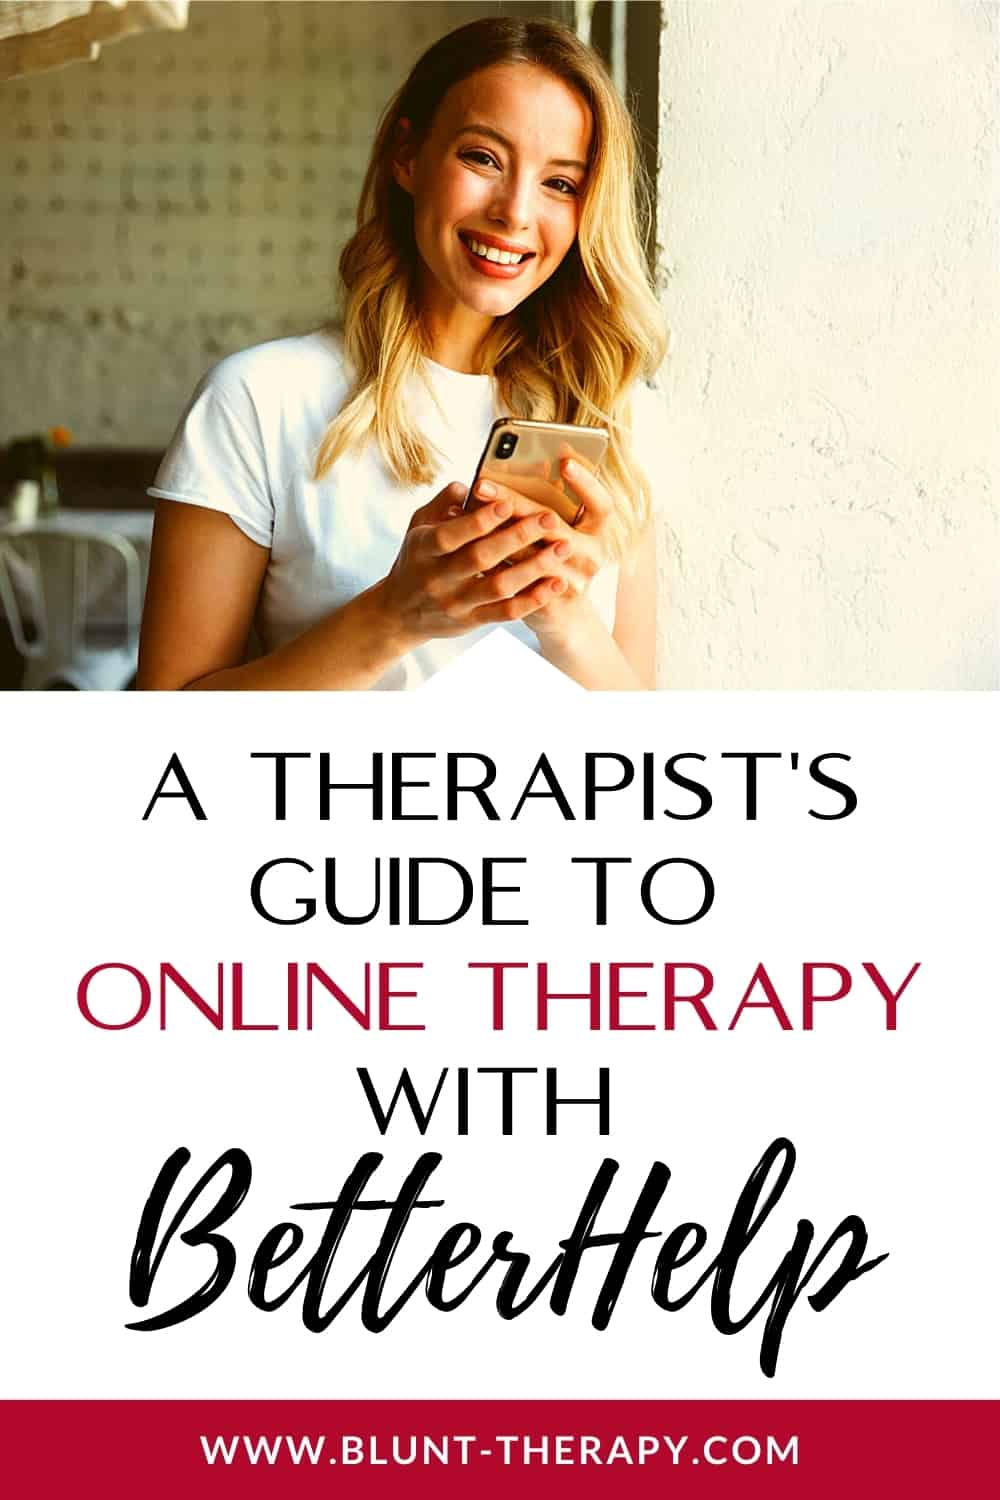 Online Therapy With BetterHelp Review Pinterest Graphic